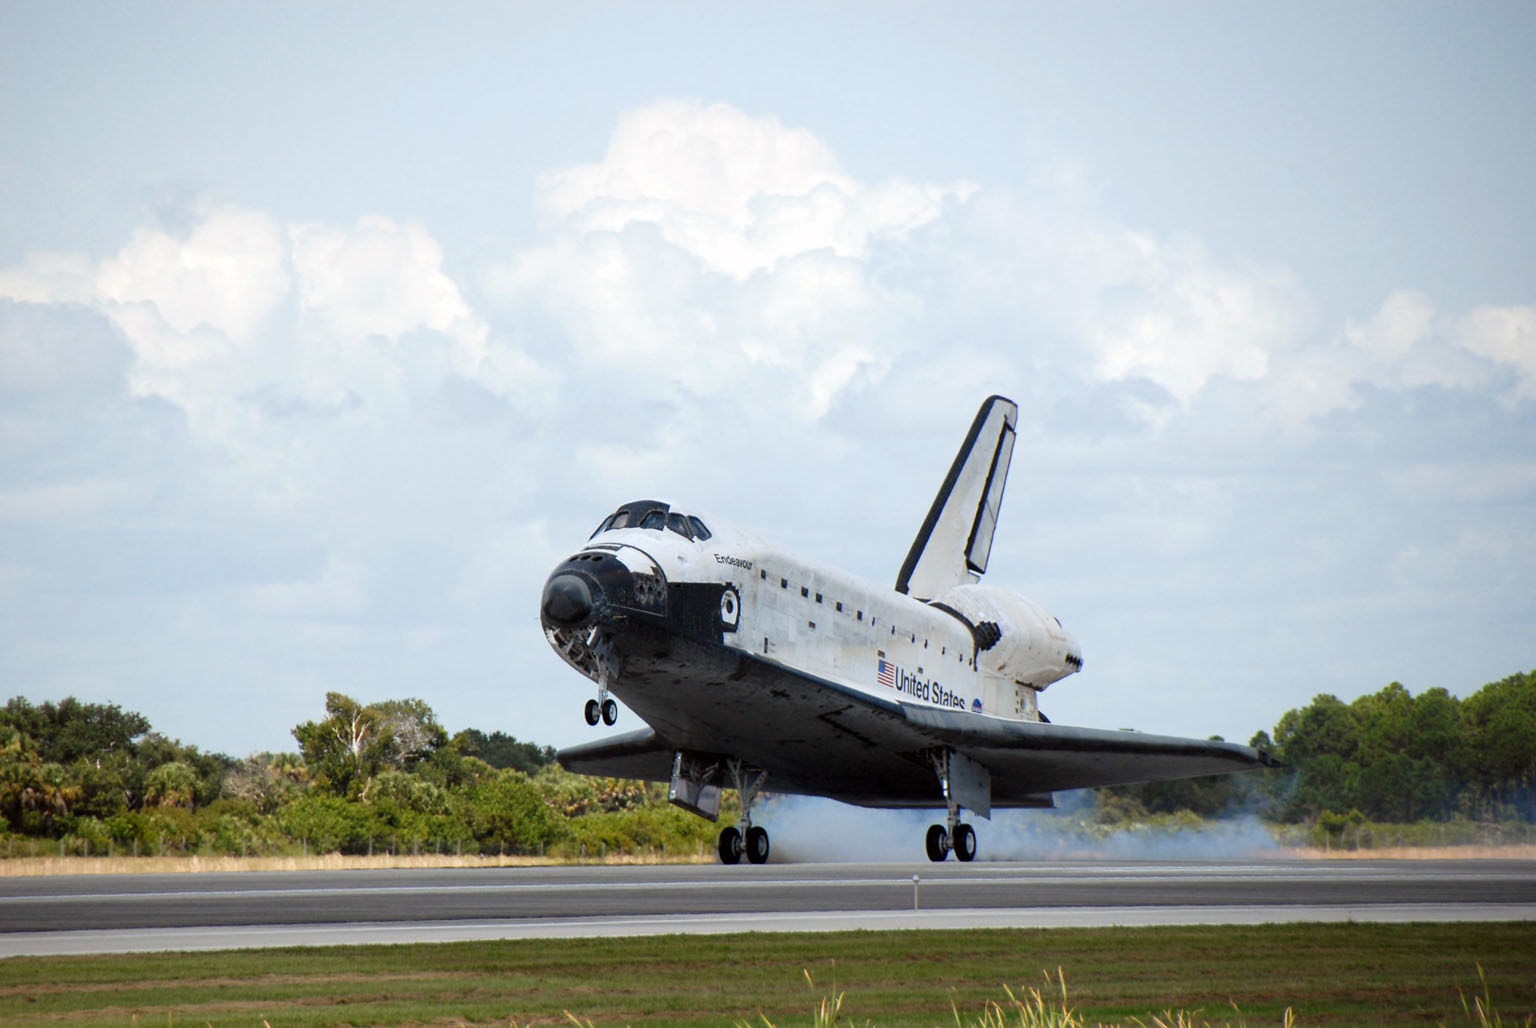 KENNEDY SPACE CENTER, FLA. -- Endeavour kicks up dust as it touches down on runway 15 at NASA's Kennedy Space Center. The Space Shuttle Endeavour crew, led by Commander Scott Kelly, completes a 13-day mission to the International Space Station. The STS-118 mission began Aug. 8 and installed a new gyroscope, an external spare parts platform and another truss segment to the expanding station. Endeavour's main gear touched down at 12:32:16 p.m. EDT. Nose gear touchdown was at 12:32:29 p.m. and wheel stop was at 12:33:20 p.m. Endeavour traveled nearly 5.3 million miles, landing on orbit 201. STS-118 was the 119th space shuttle flight, the 22nd flight to the station, the 20th flight for Endeavour and the second of four missions planned for 2007. This was the 65th landing of an orbiter at Kennedy. Photo credit: NASA/Kim Shiflett